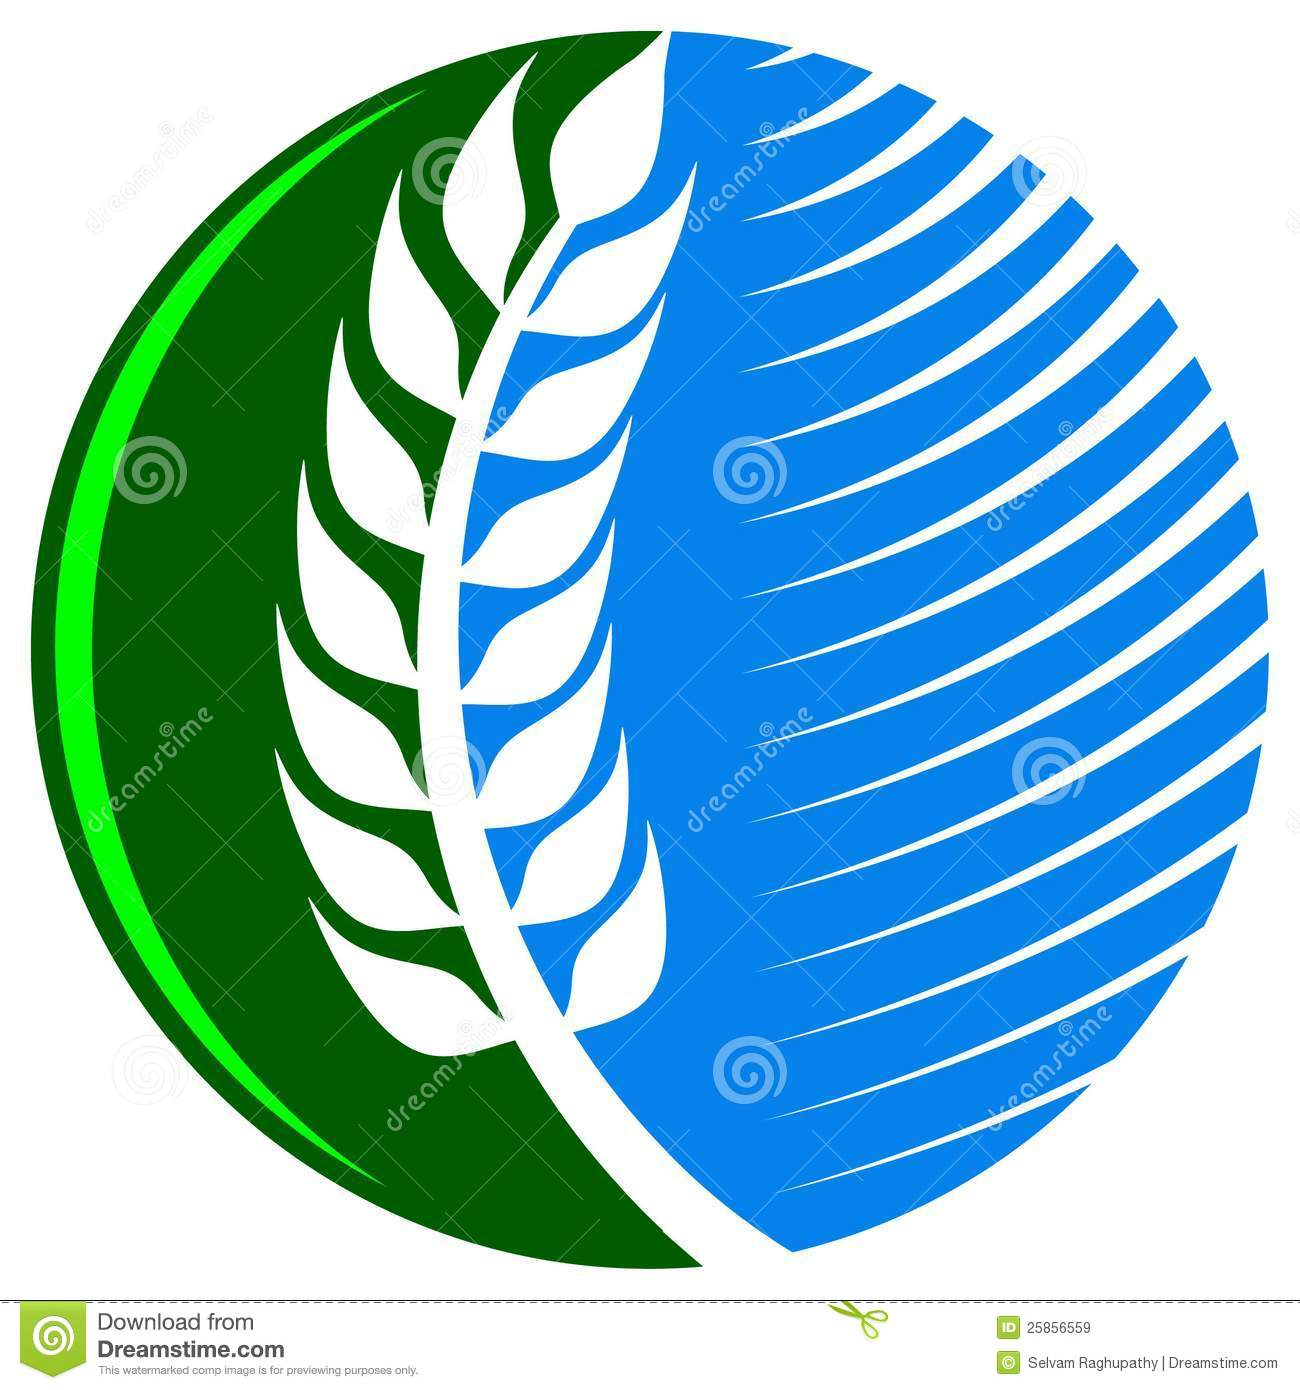 agricultural logo royalty free stock images image 25856559 world globe icon vector globe icon vector